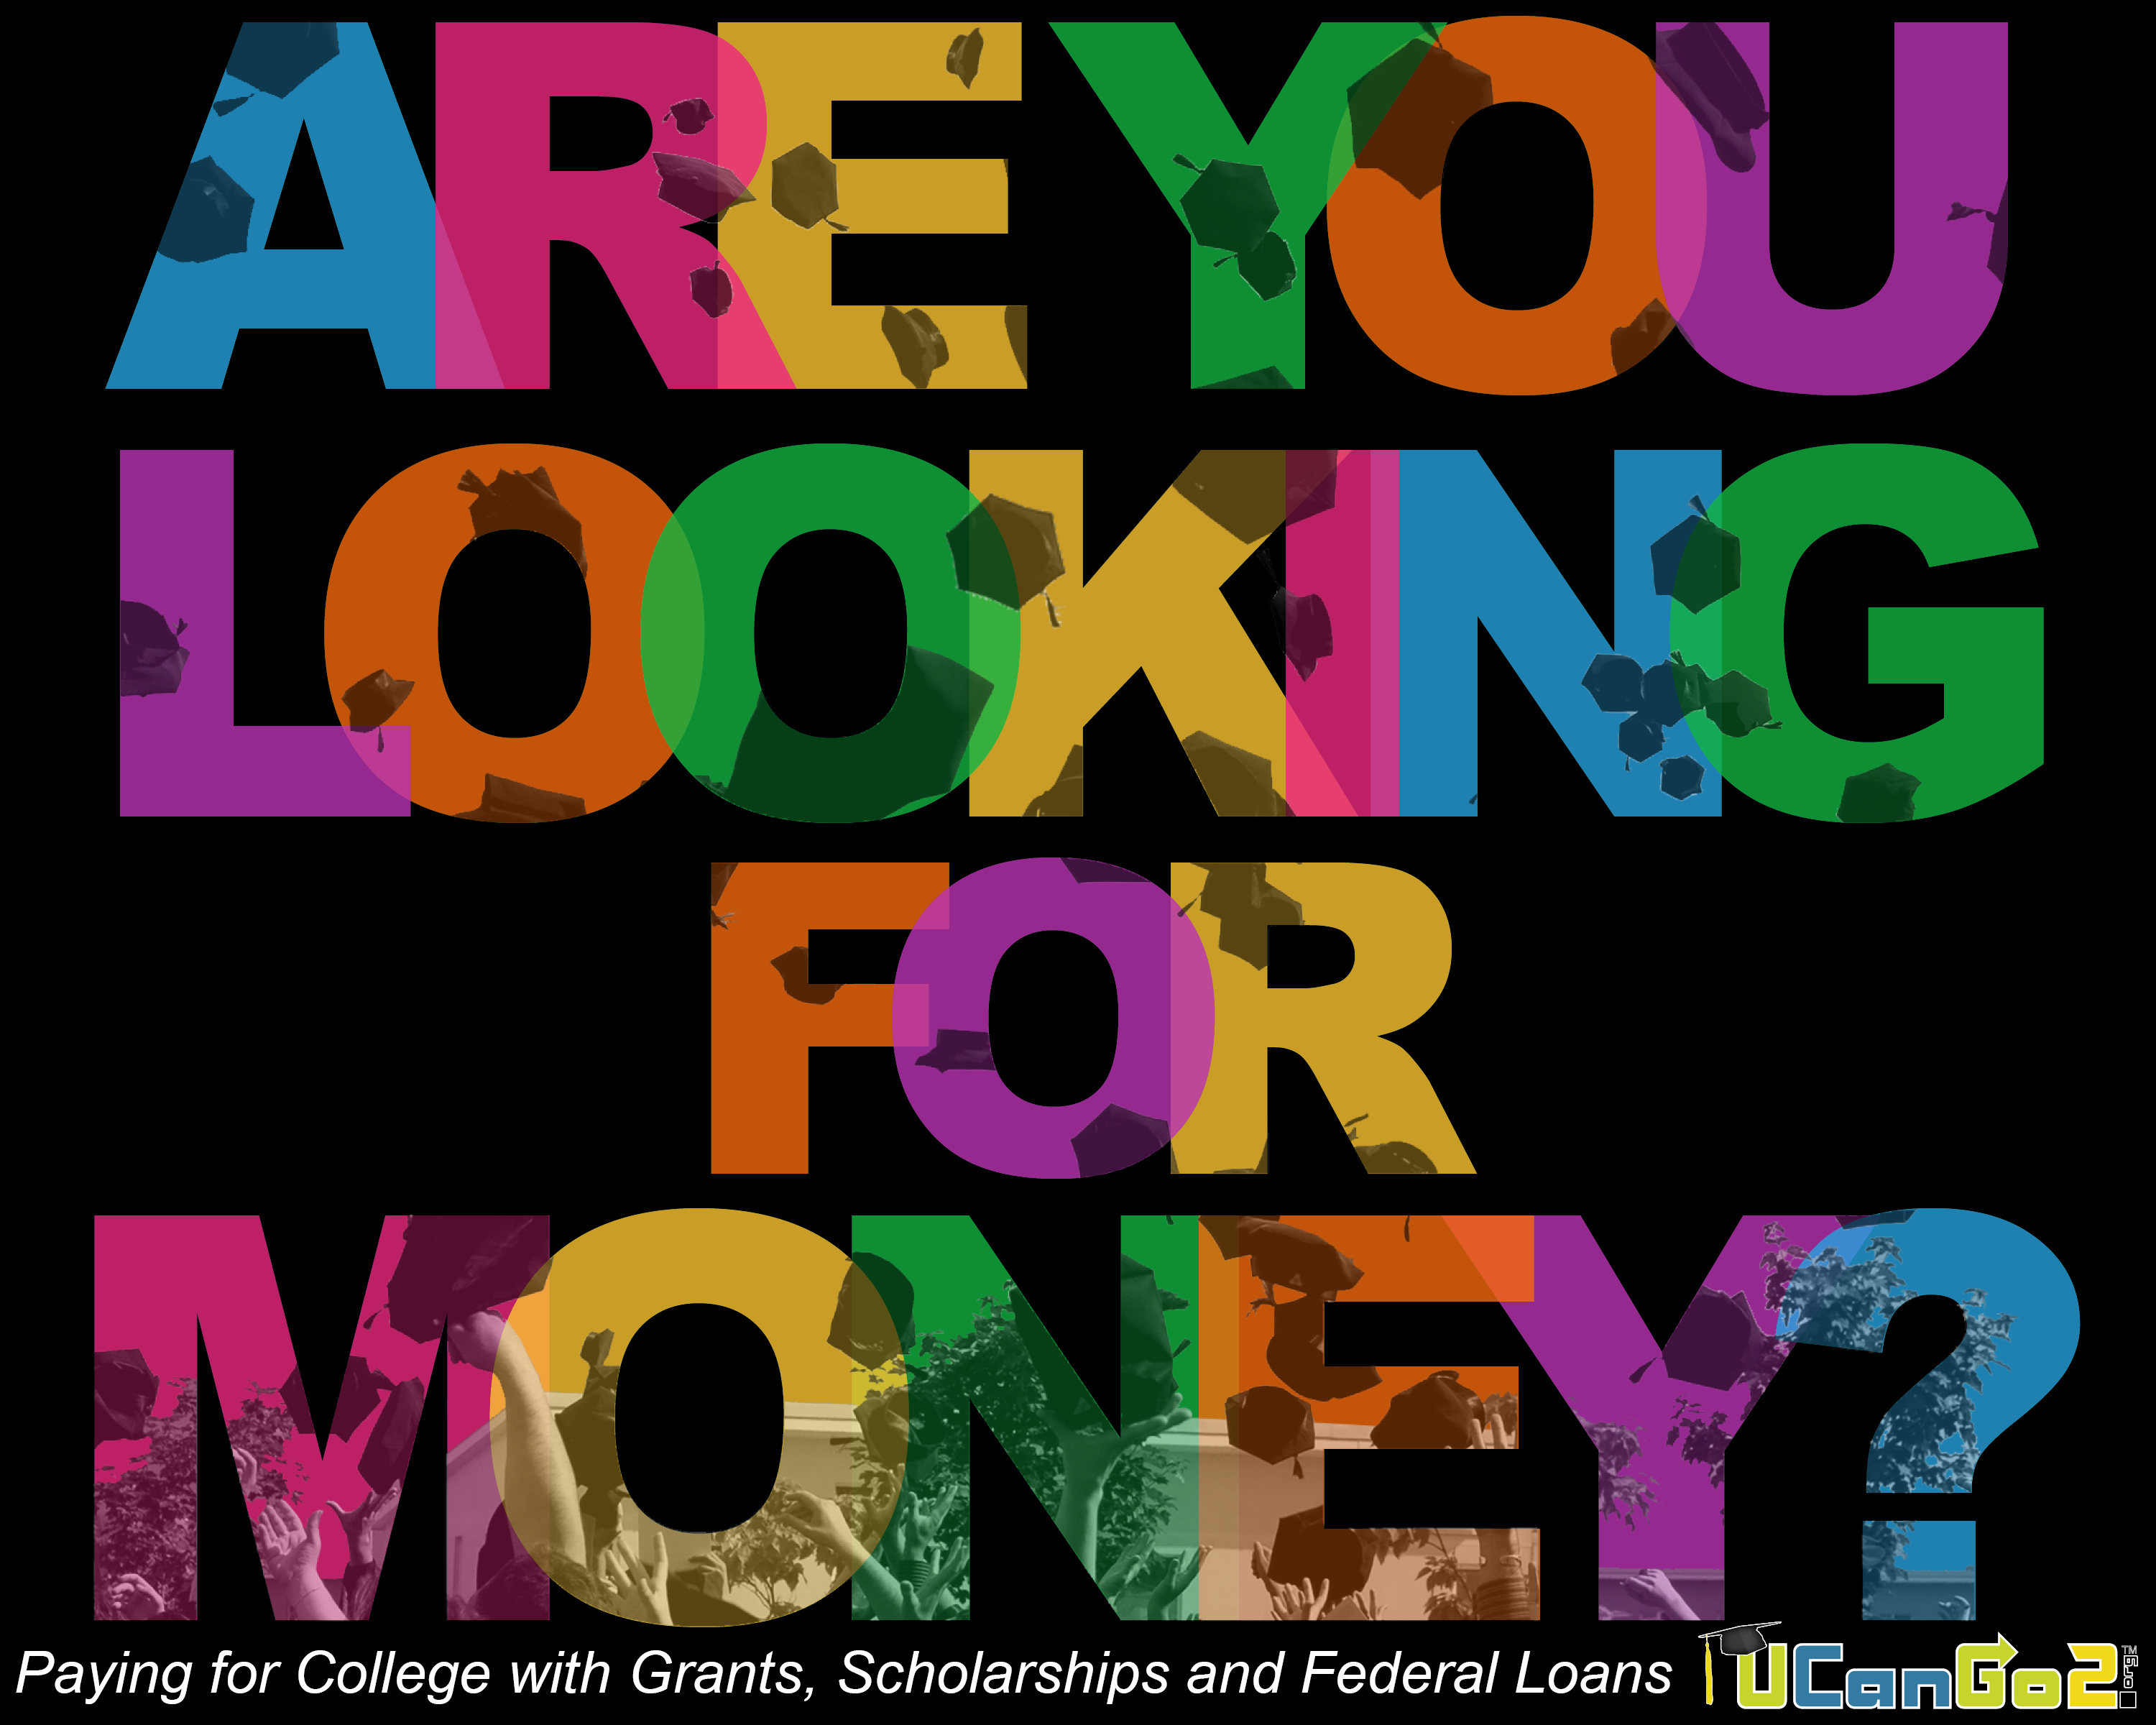 Are You Looking for Money?